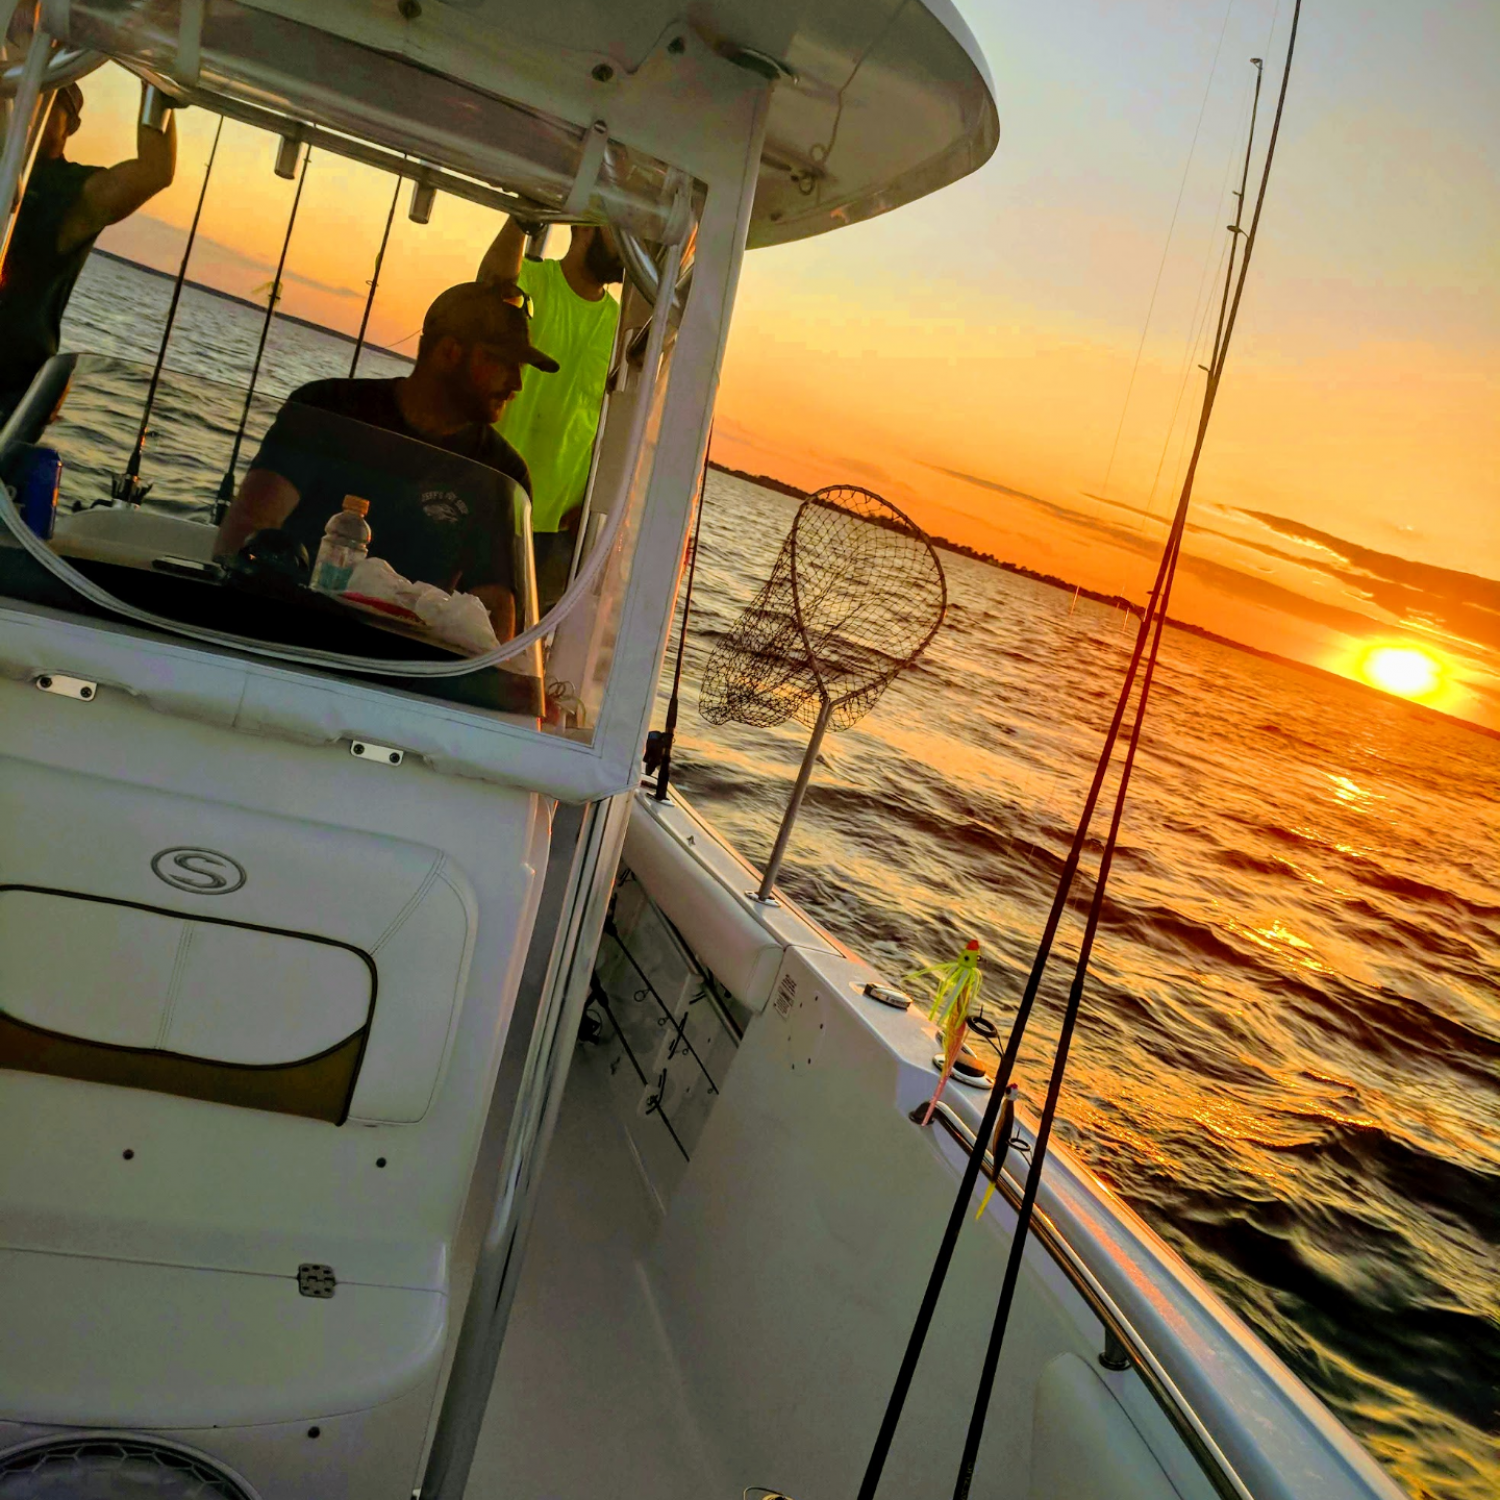 Title: Sunset on Eastern bay! - On board their Sportsman Open 232 Center Console - Location: Stevensville md. Participating in the Photo Contest #SportsmanFebruary2019